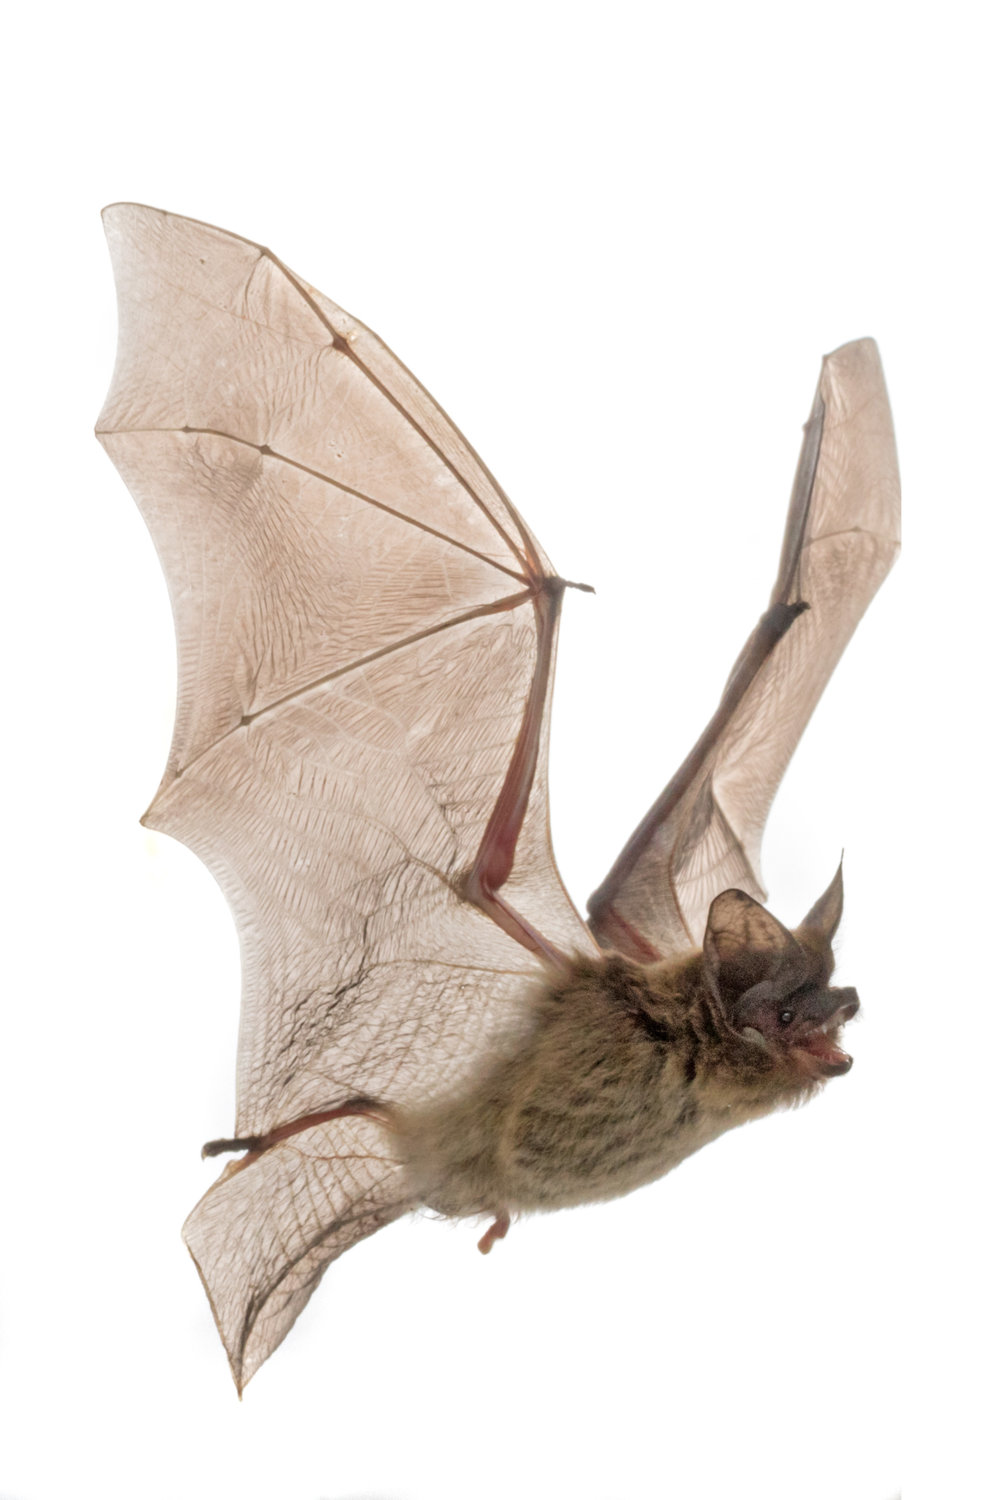 Laeophotis botswanae, the Botswanan long-eared bat.